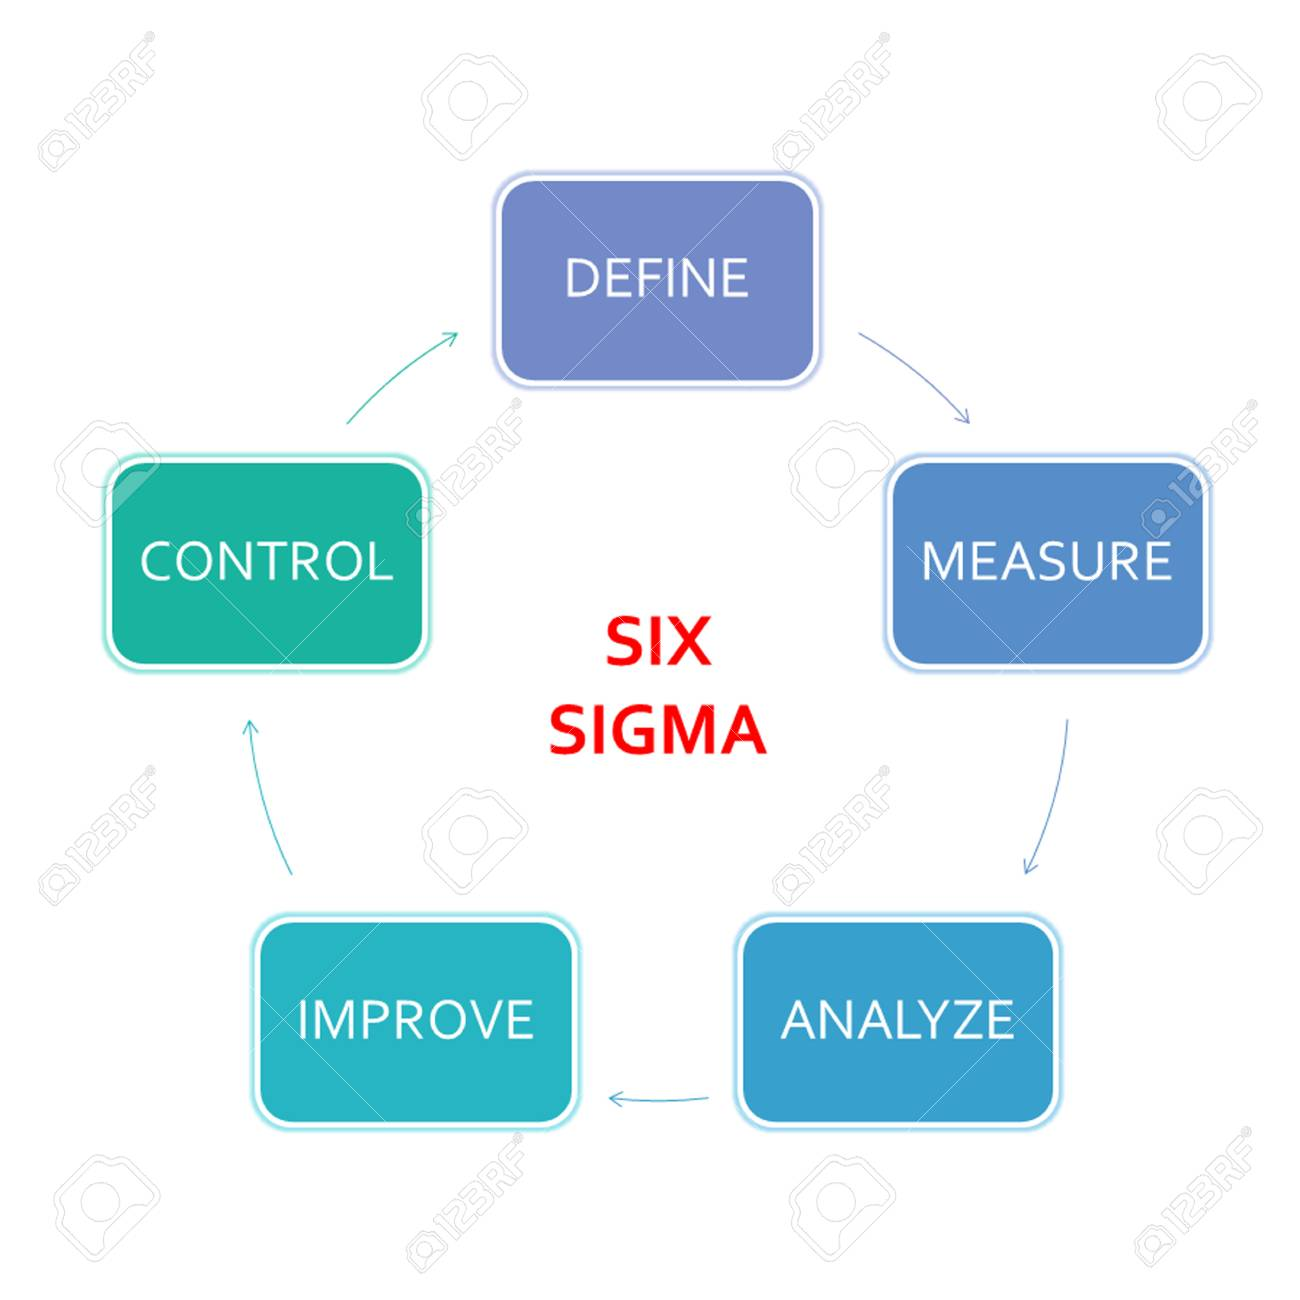 hight resolution of picture diagram of dmaic application method based on the six sigma principle of the industry stock